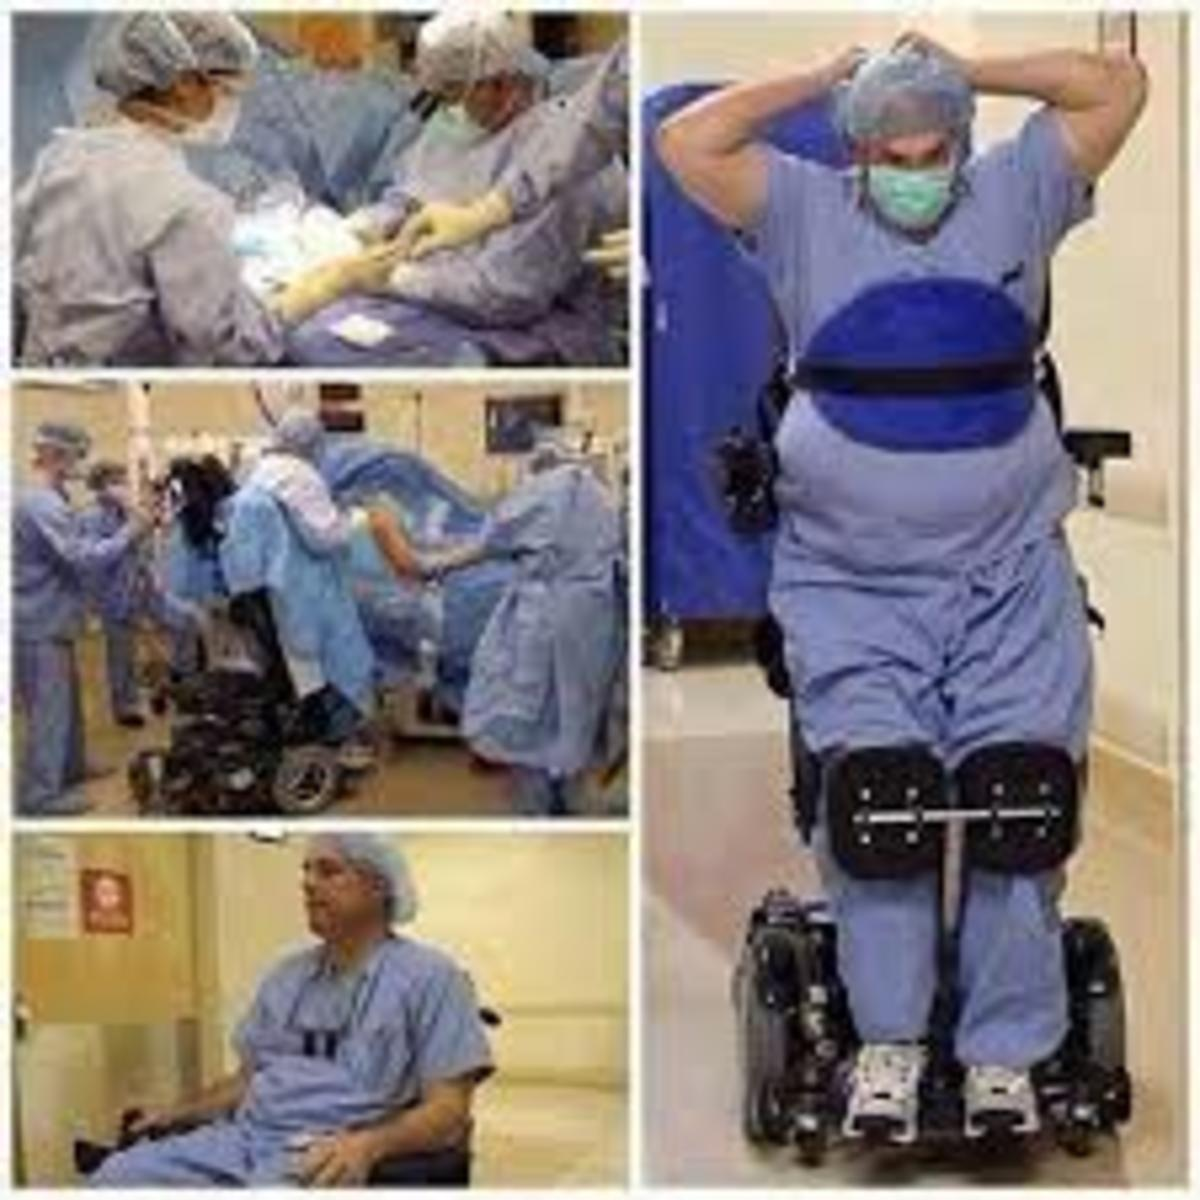 Missouri surgeon, Dr Ted Rummell, who returned to the operating room after suffering paralysis from the waist down.